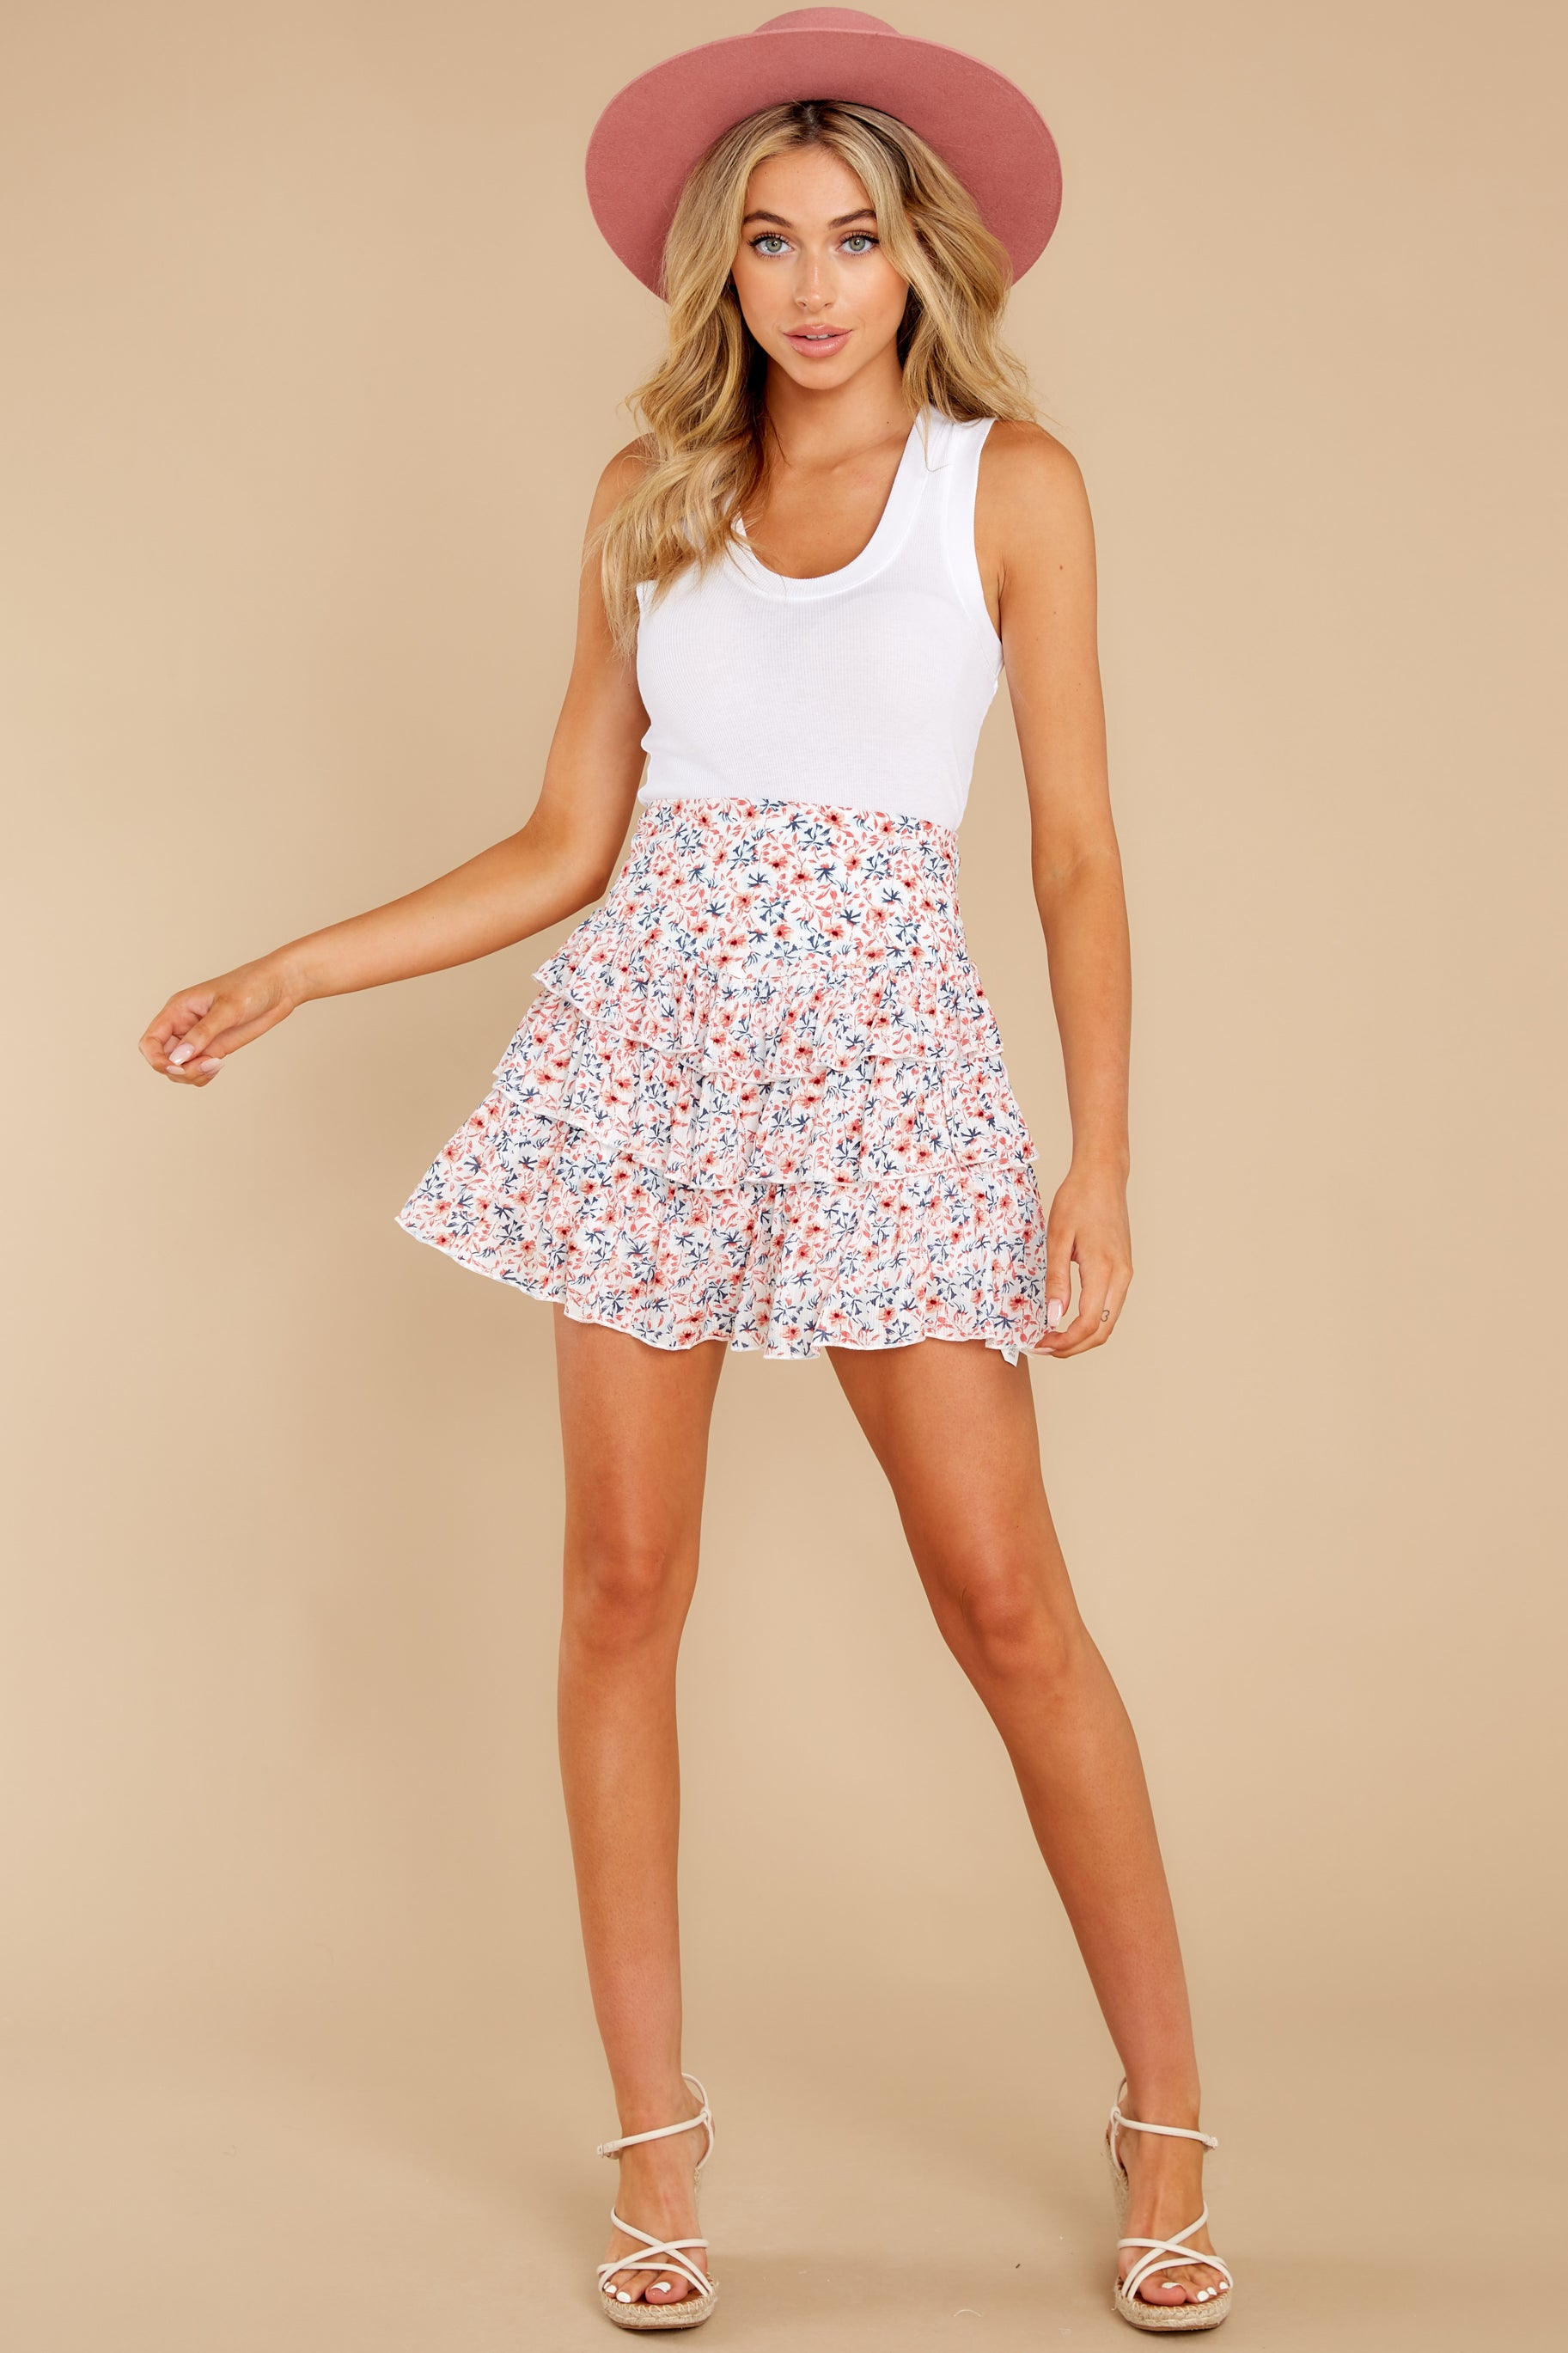 4 Heat Wave White Floral Print Mini Skirt at reddress.com